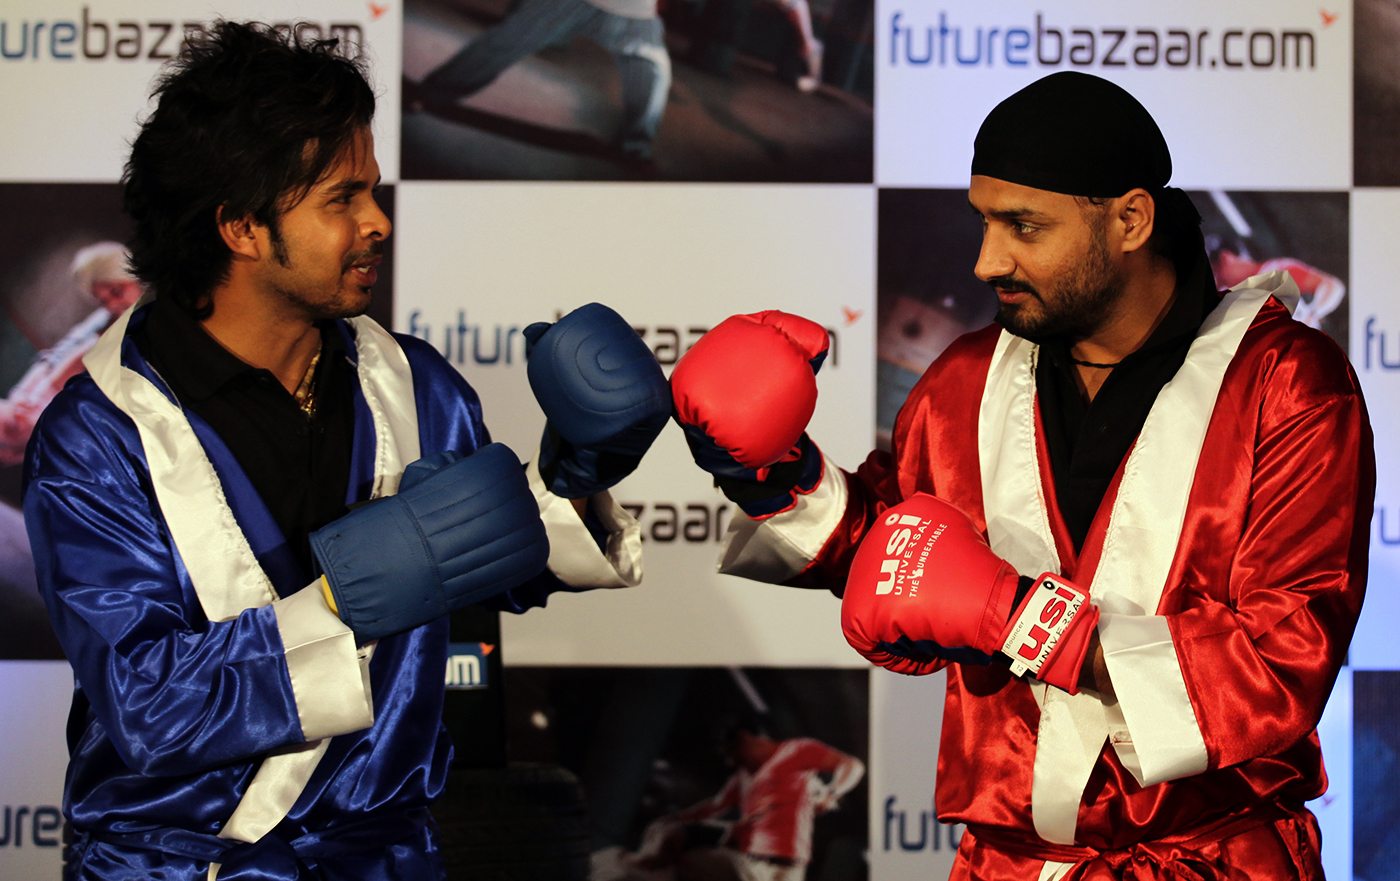 Gloves on: Harbhajan Singh and Sreesanth at a promotional event in 2010 that riffed on the Slapgate incident